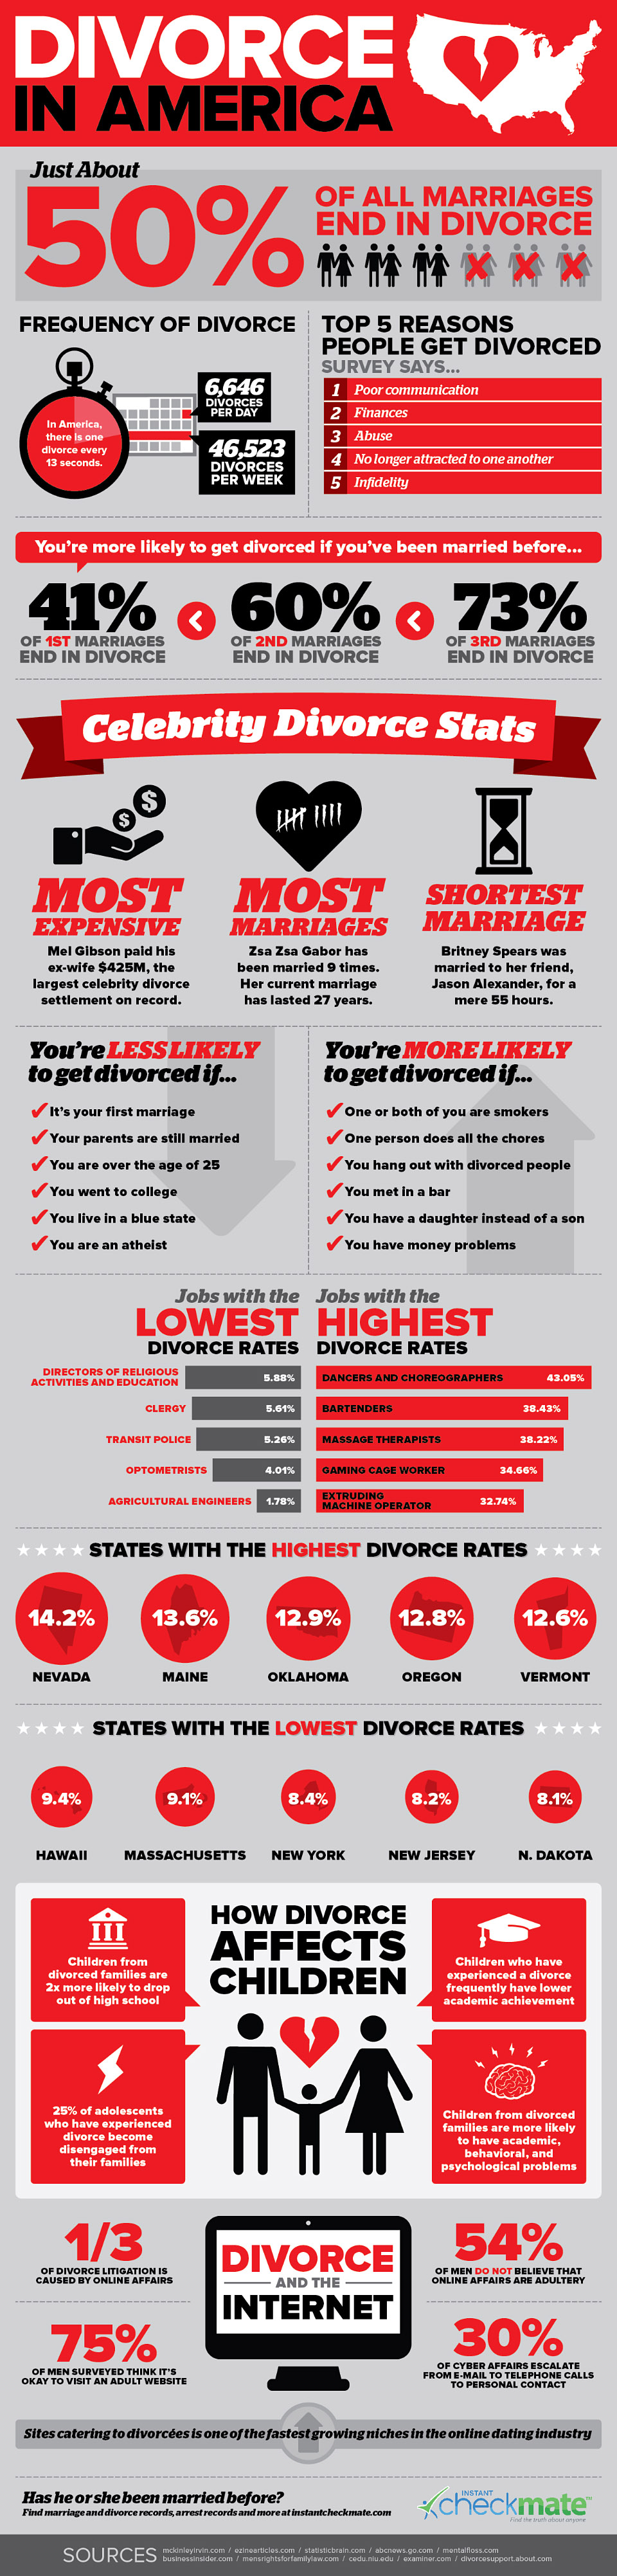 divorce 2013 infographic